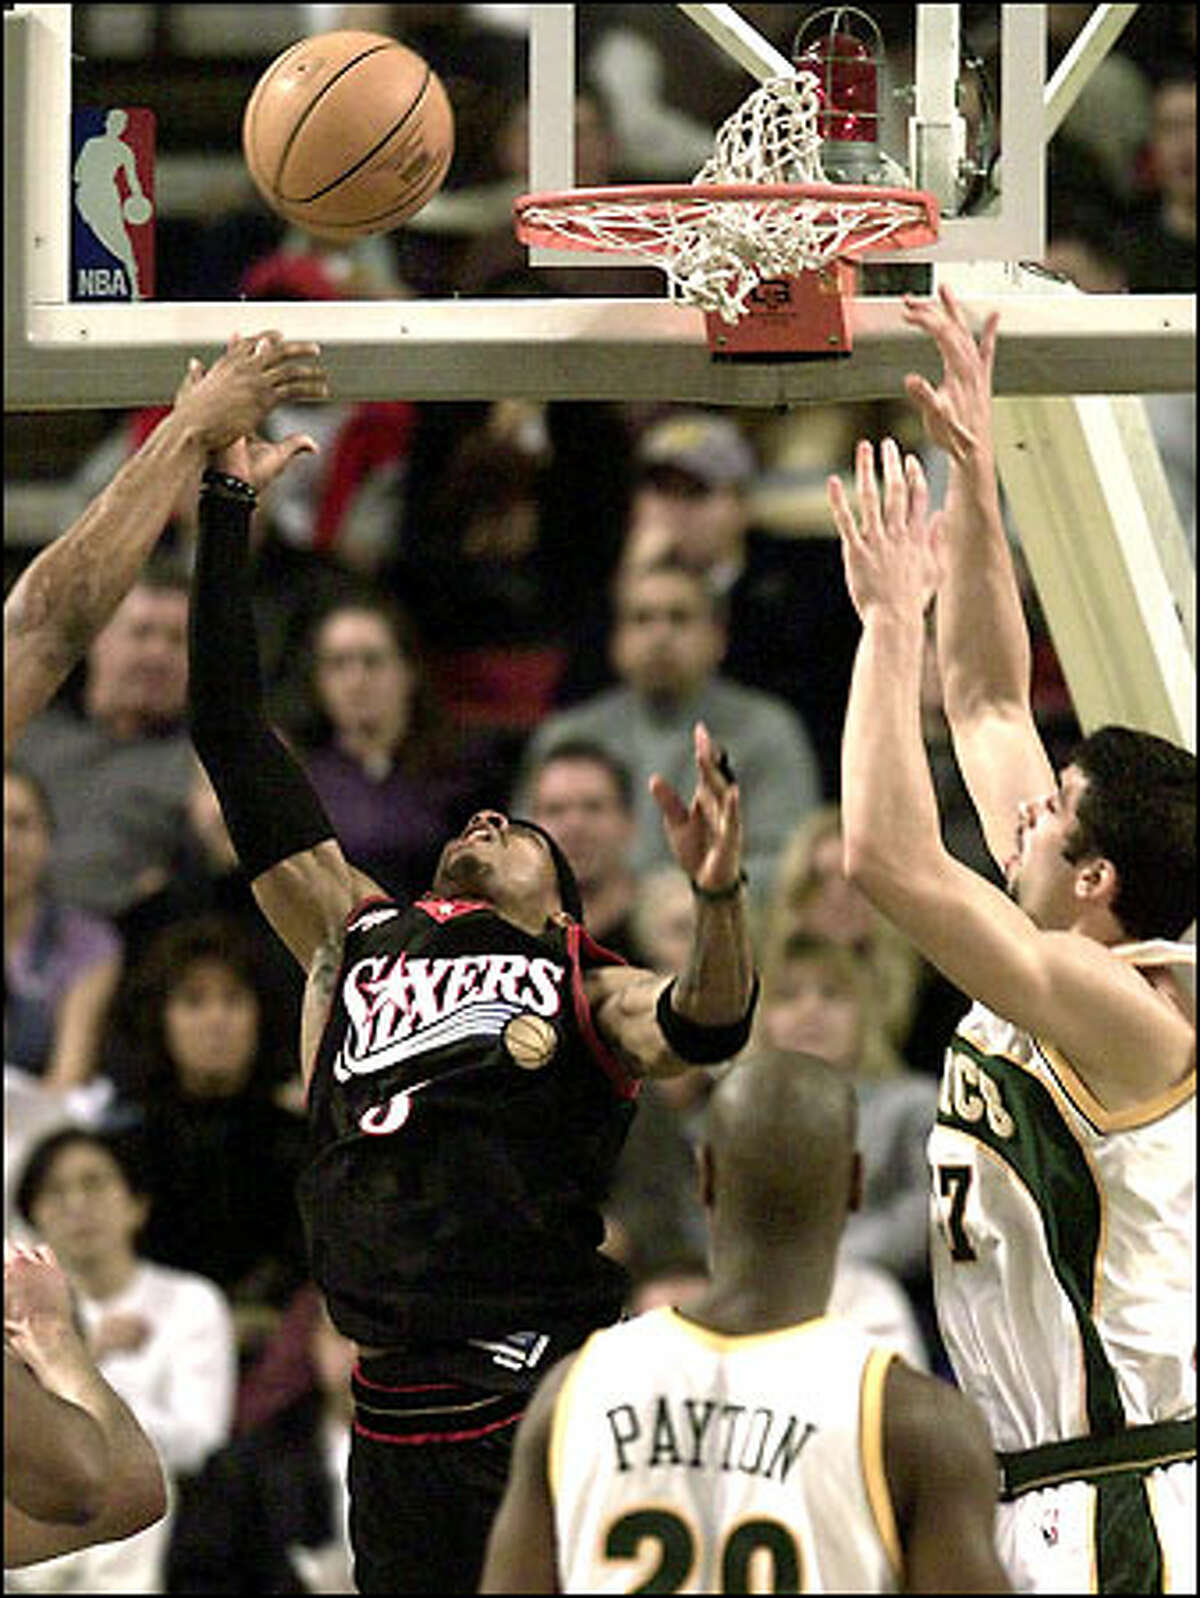 The 76ers' Allen Iverson underhands a ball to the basket in the first half as Vladimir Radmanovic tries to block the shot. Gary Payton looks on.